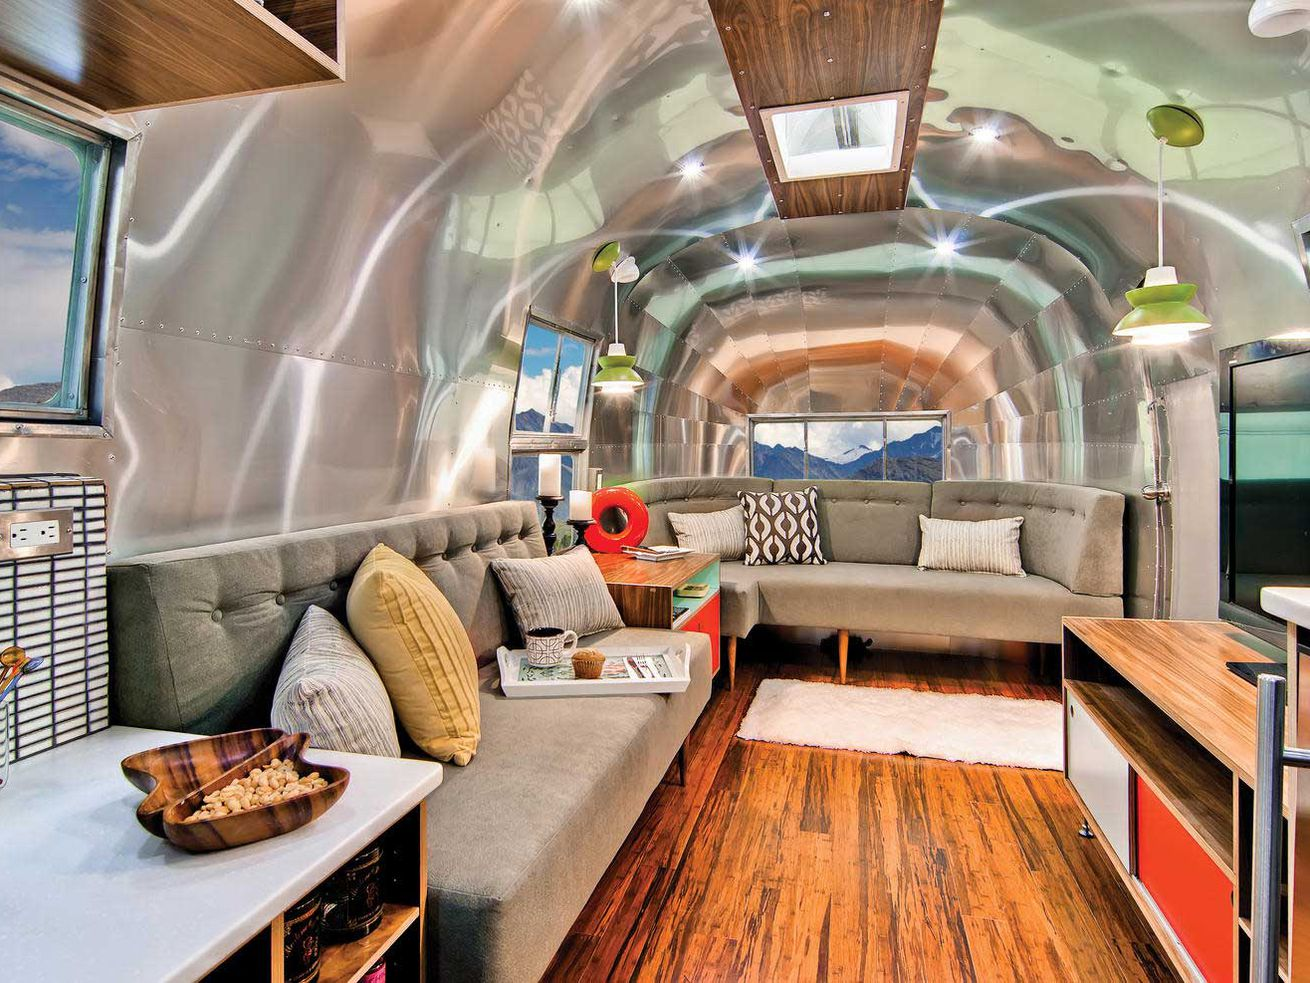 Rare 40-foot Airstream renovated into midcentury modern dream